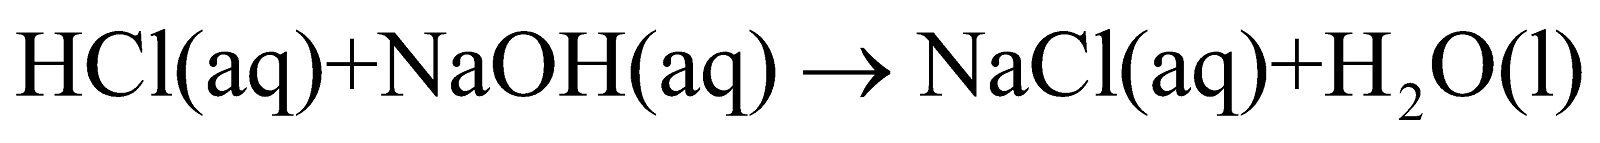 Molecular equation for reaction between water and sodium hydroxide